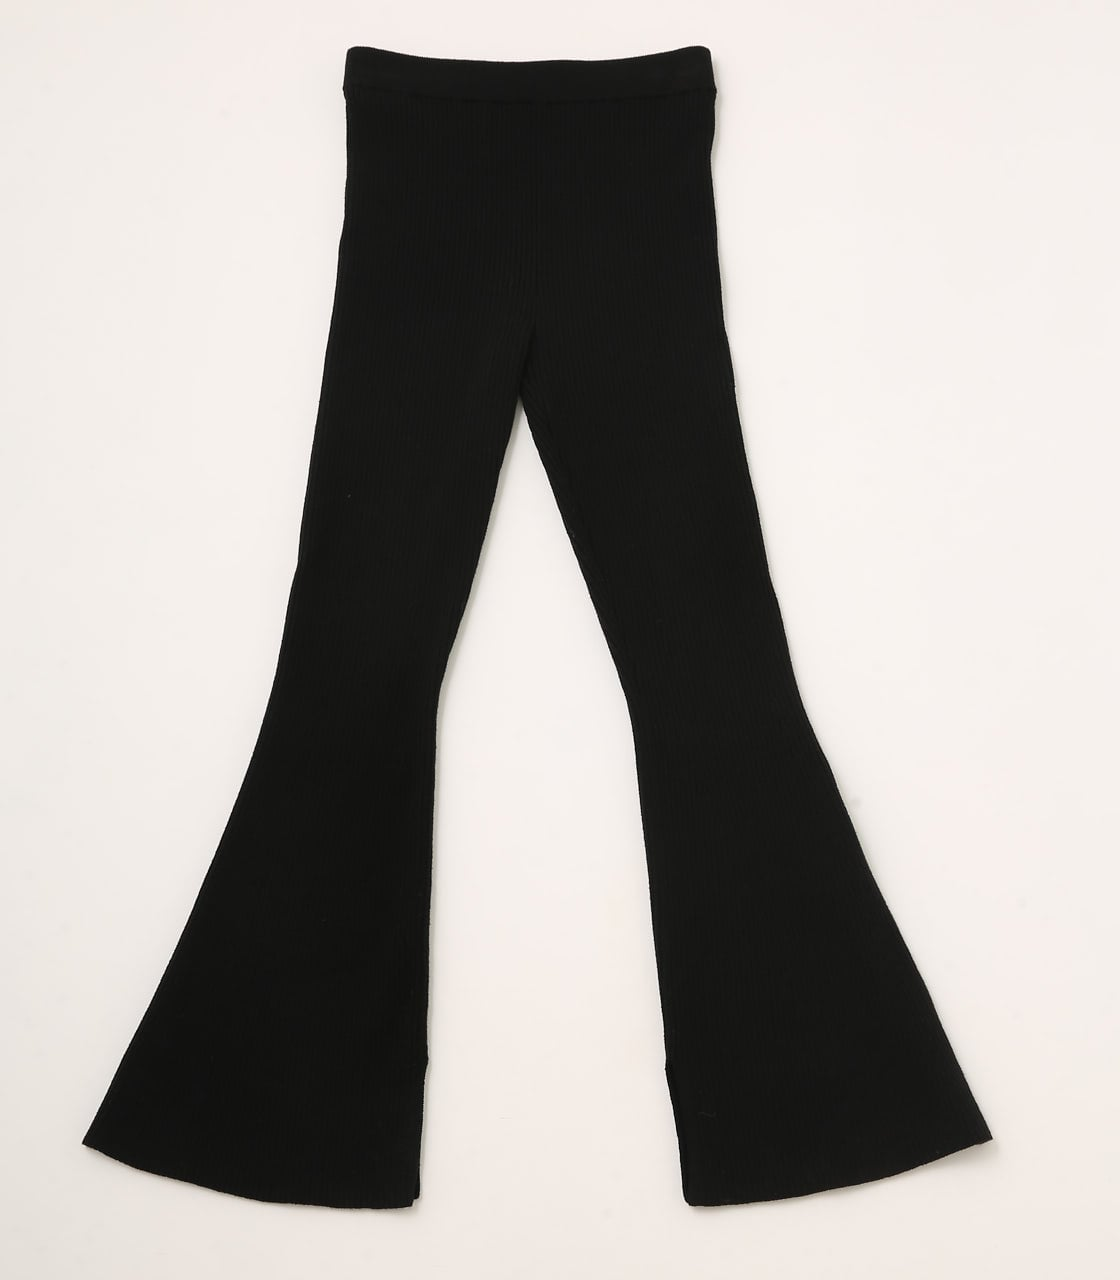 【AZUL BY MOUSSY】RIB KNIT FLARE PANTS 詳細画像 BLK 8